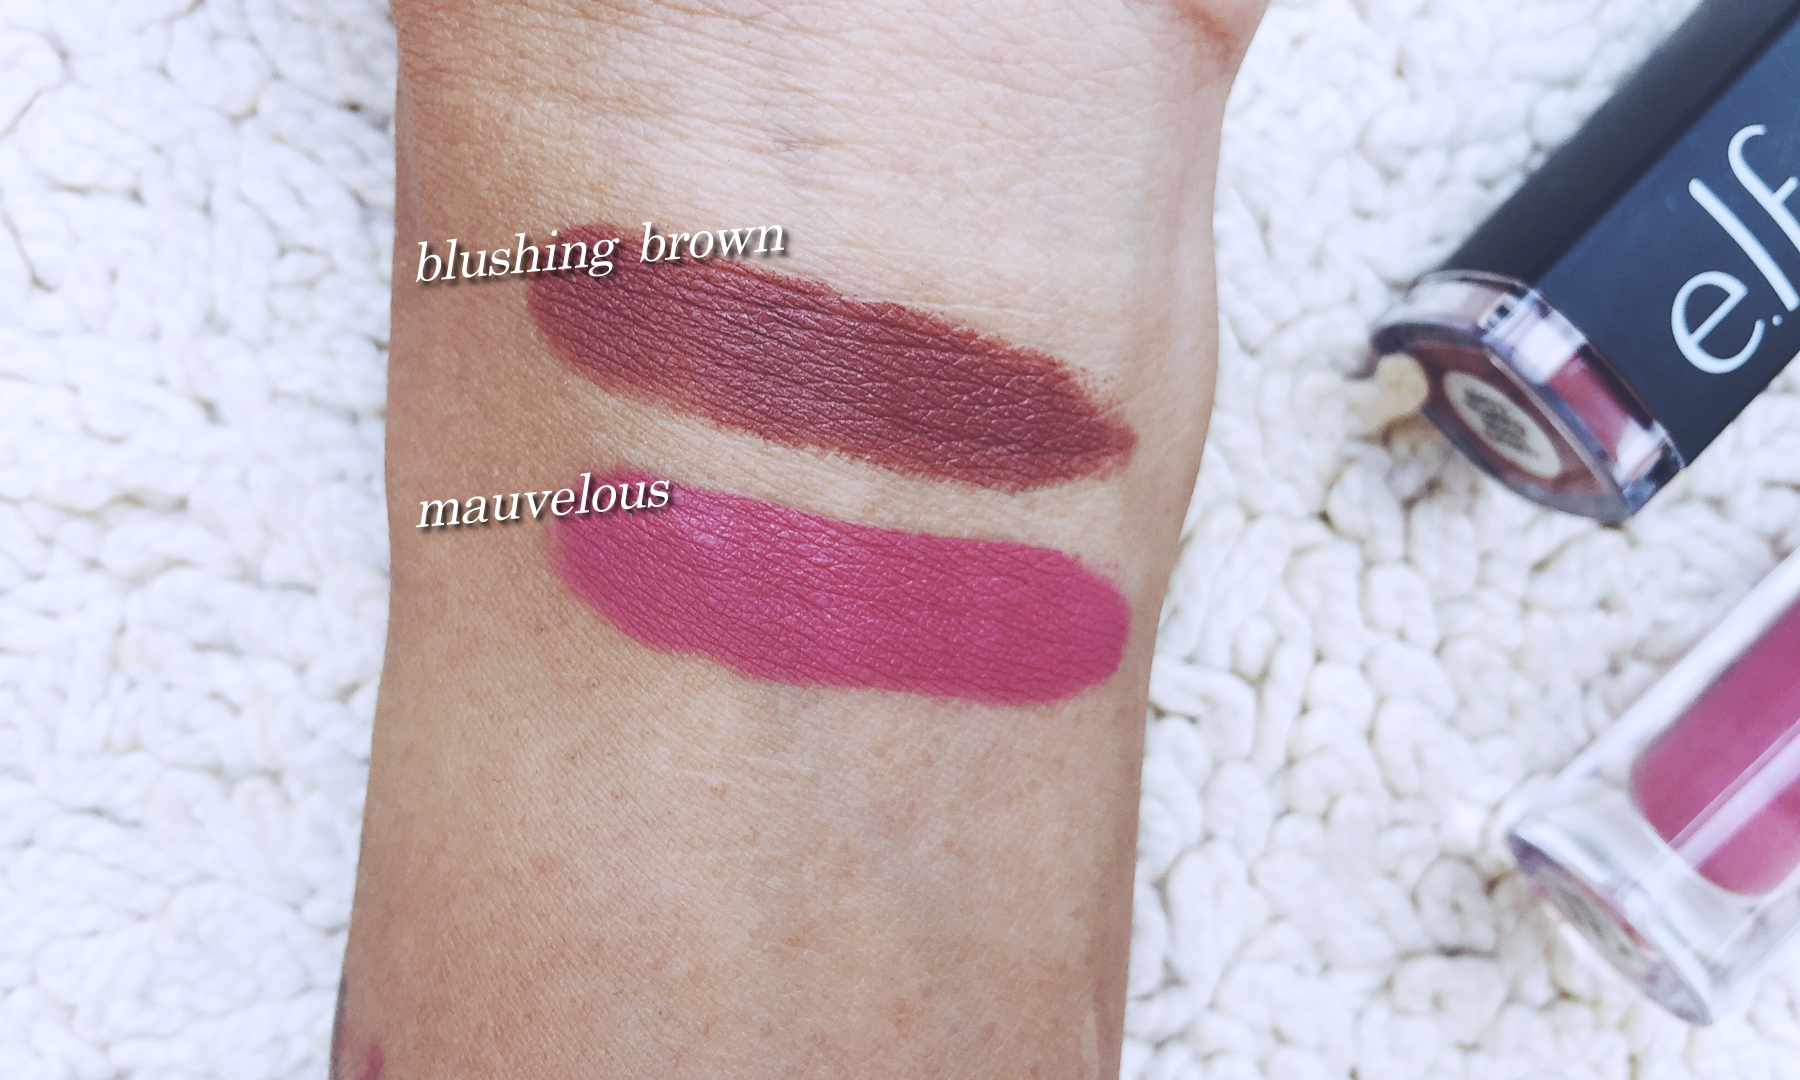 3 full swipes for Blushing Brown and a layer and a half for Mauvelous.